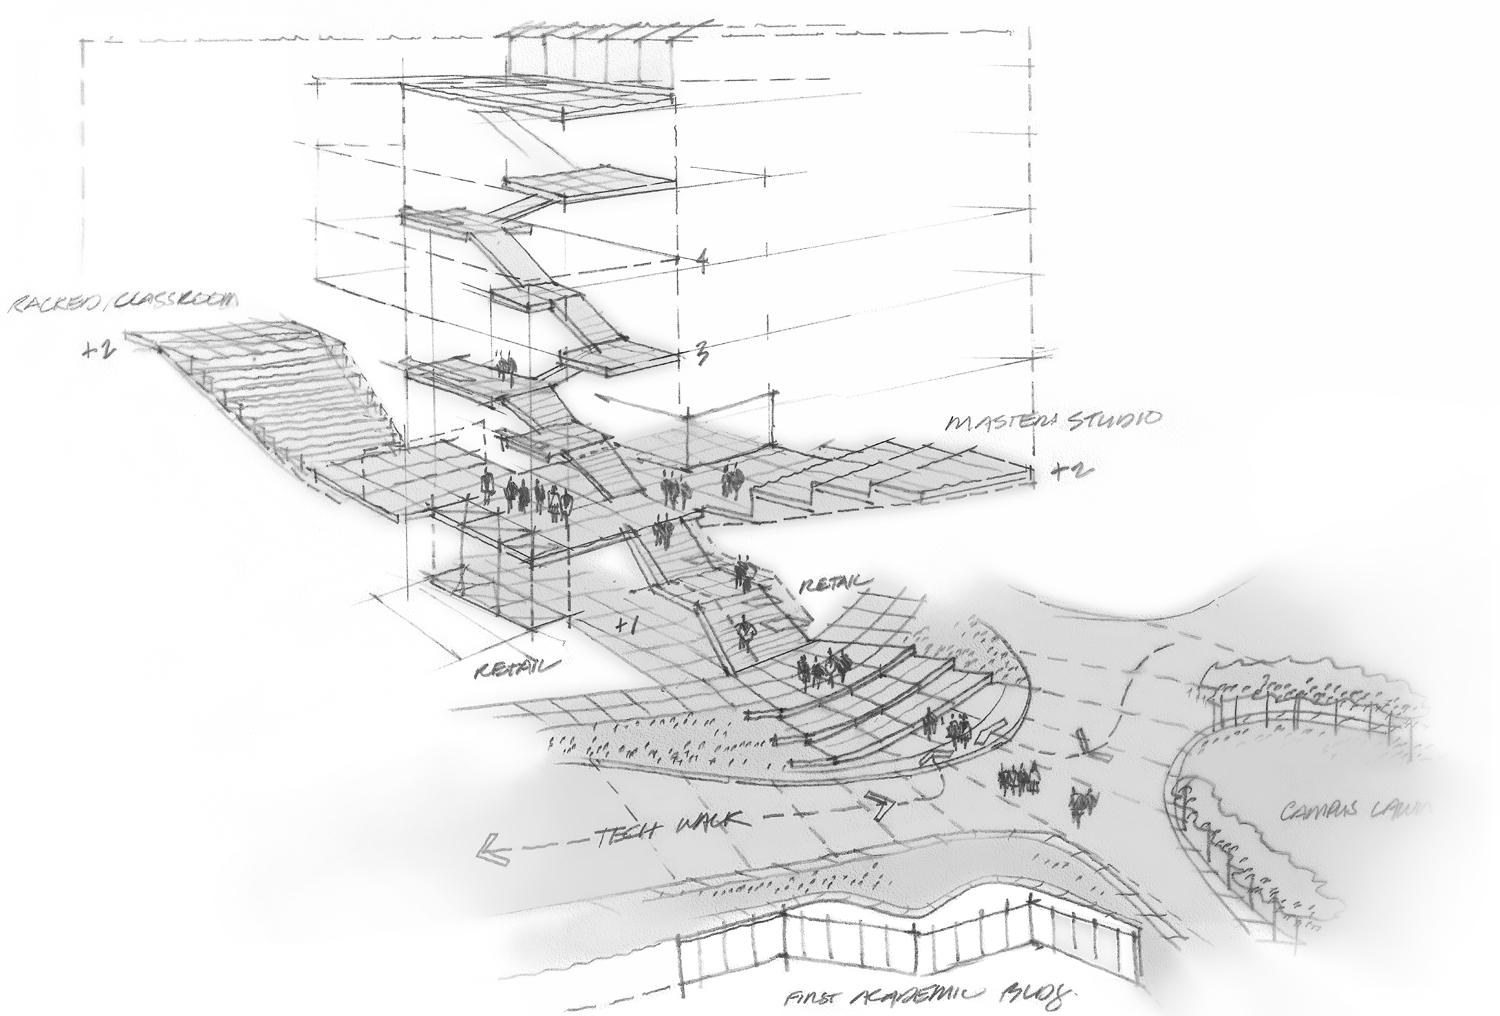 Tata Innovation Center Sketch. The building form is defined by a central 'bowtie' that invites people to enjoy river to river views in the light filled central gathering areas. Weiss/Manfredi}